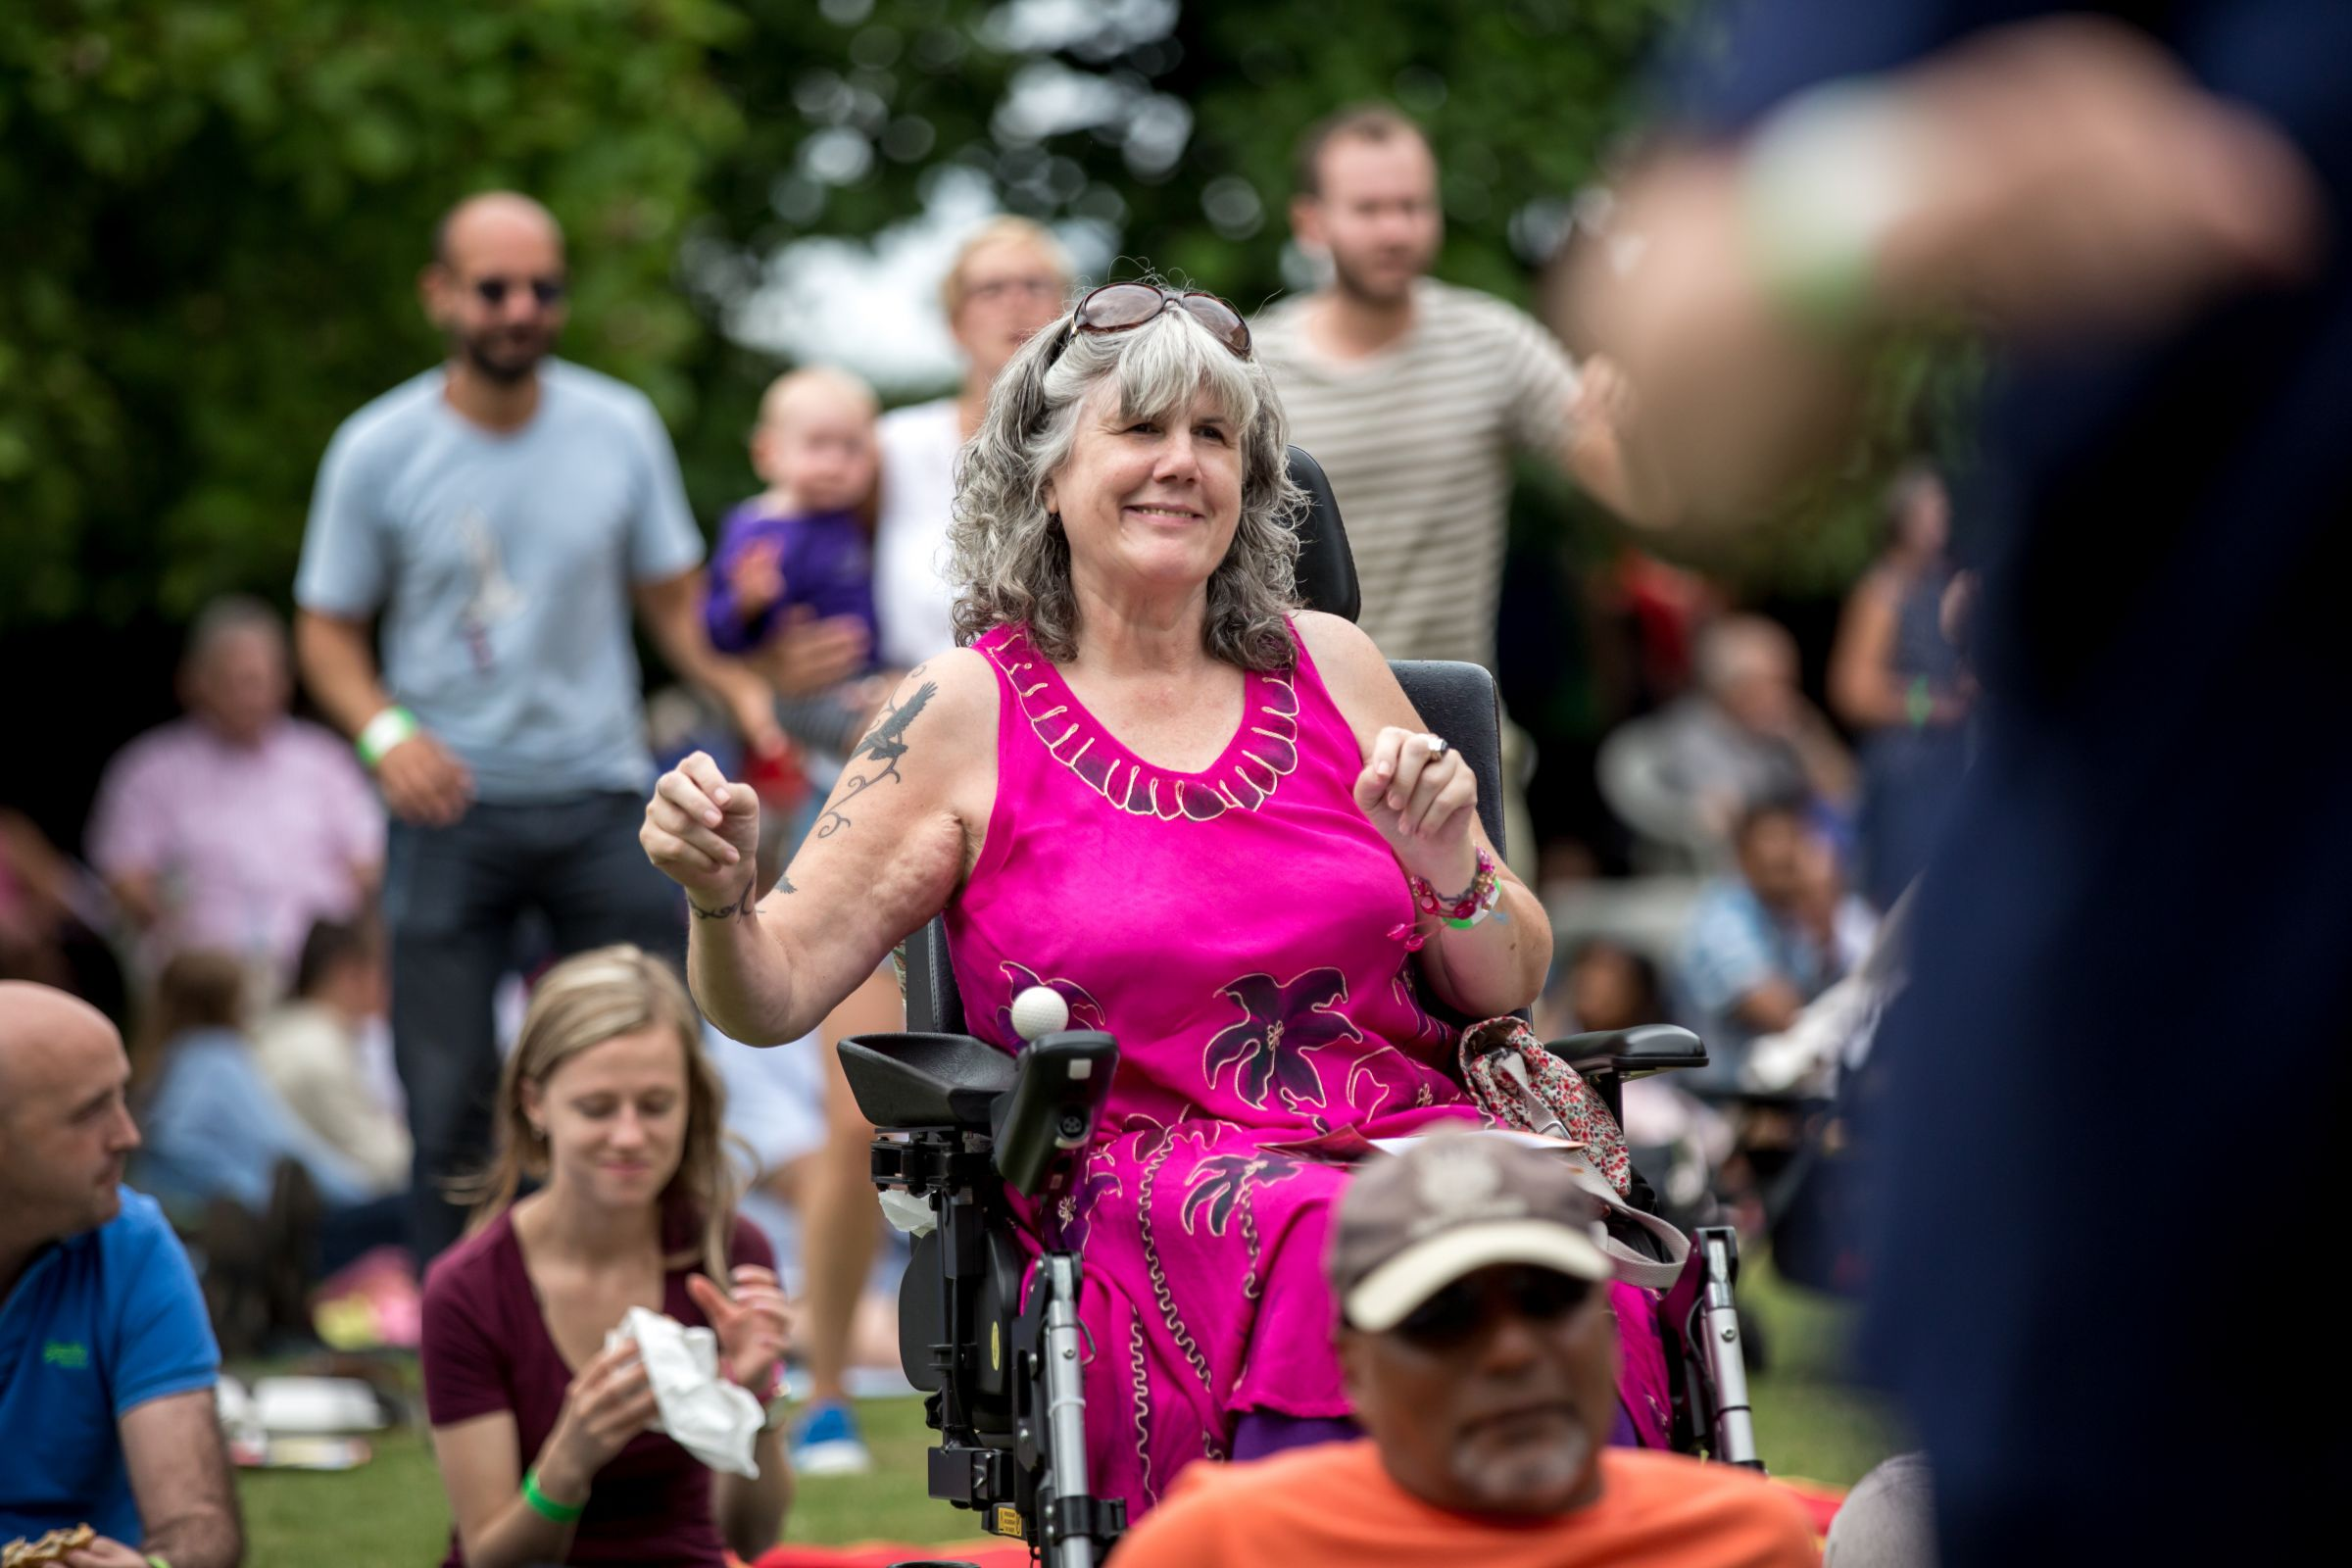 A woman in a wheelchair dances in a crowd of people